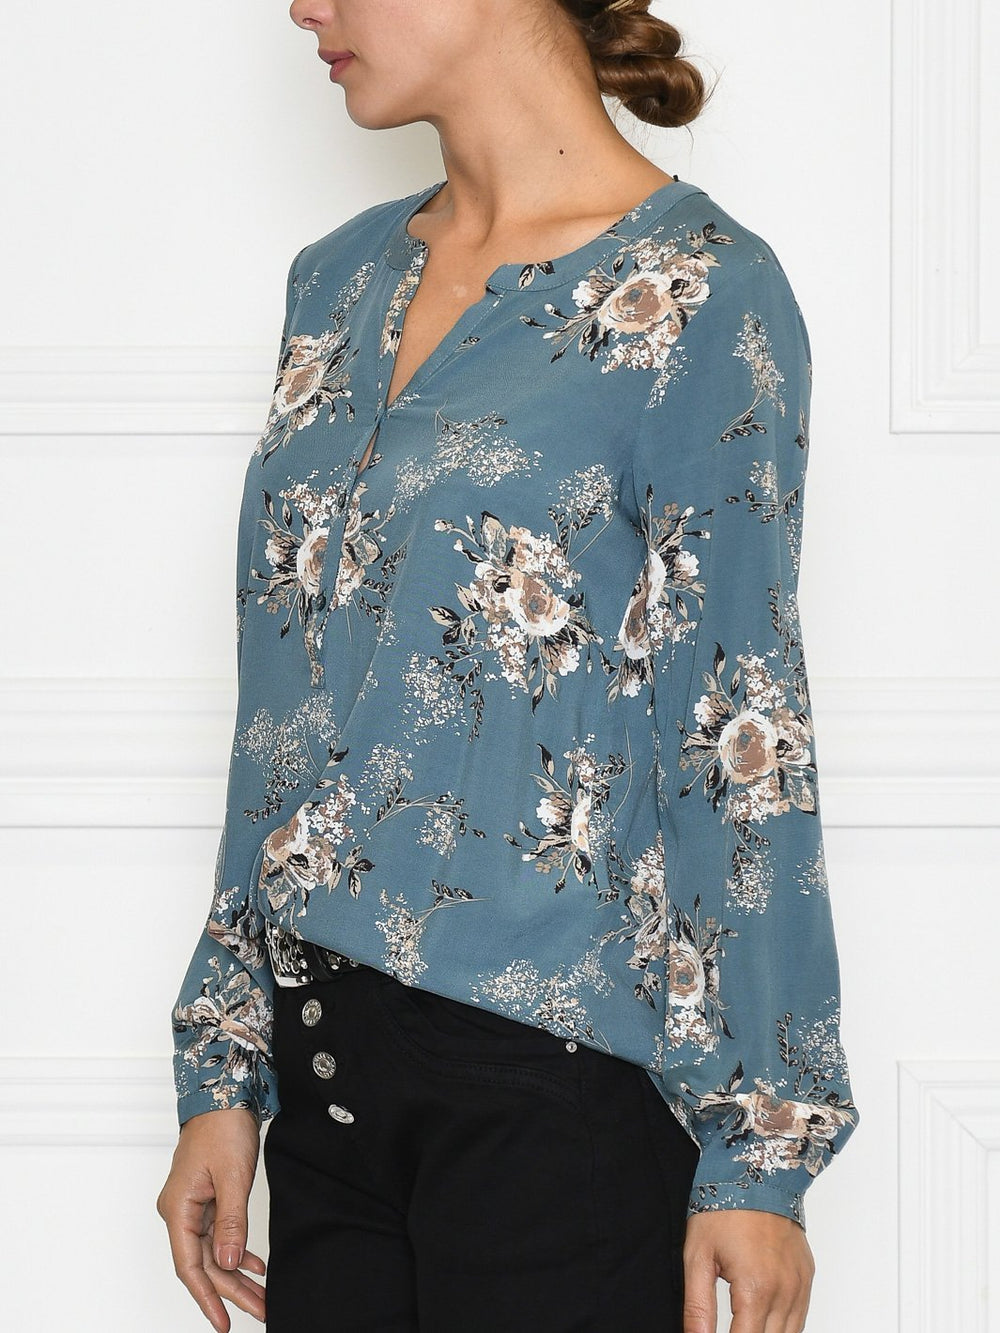 Soya Lenia 2 bluse dusty blue - Online-Mode